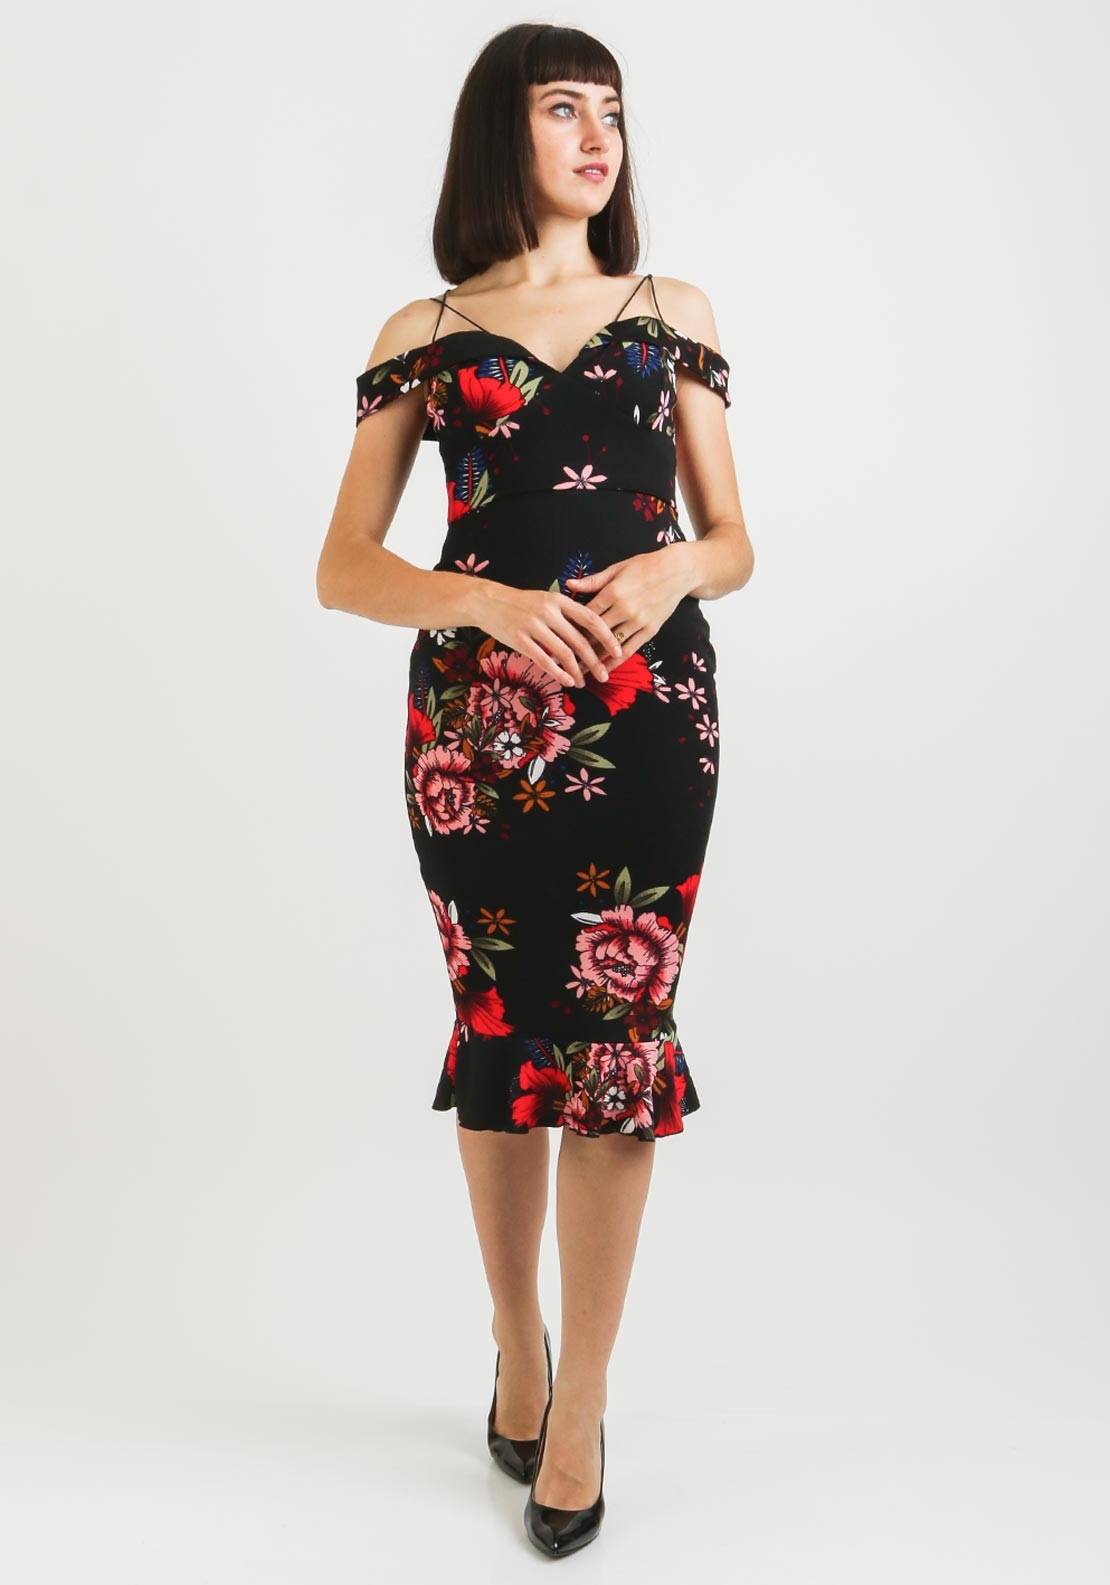 2b848bf1a3e49c AX Paris Off the Shoulder Floral Fishtail Dress, Black. Be the first to  review this product